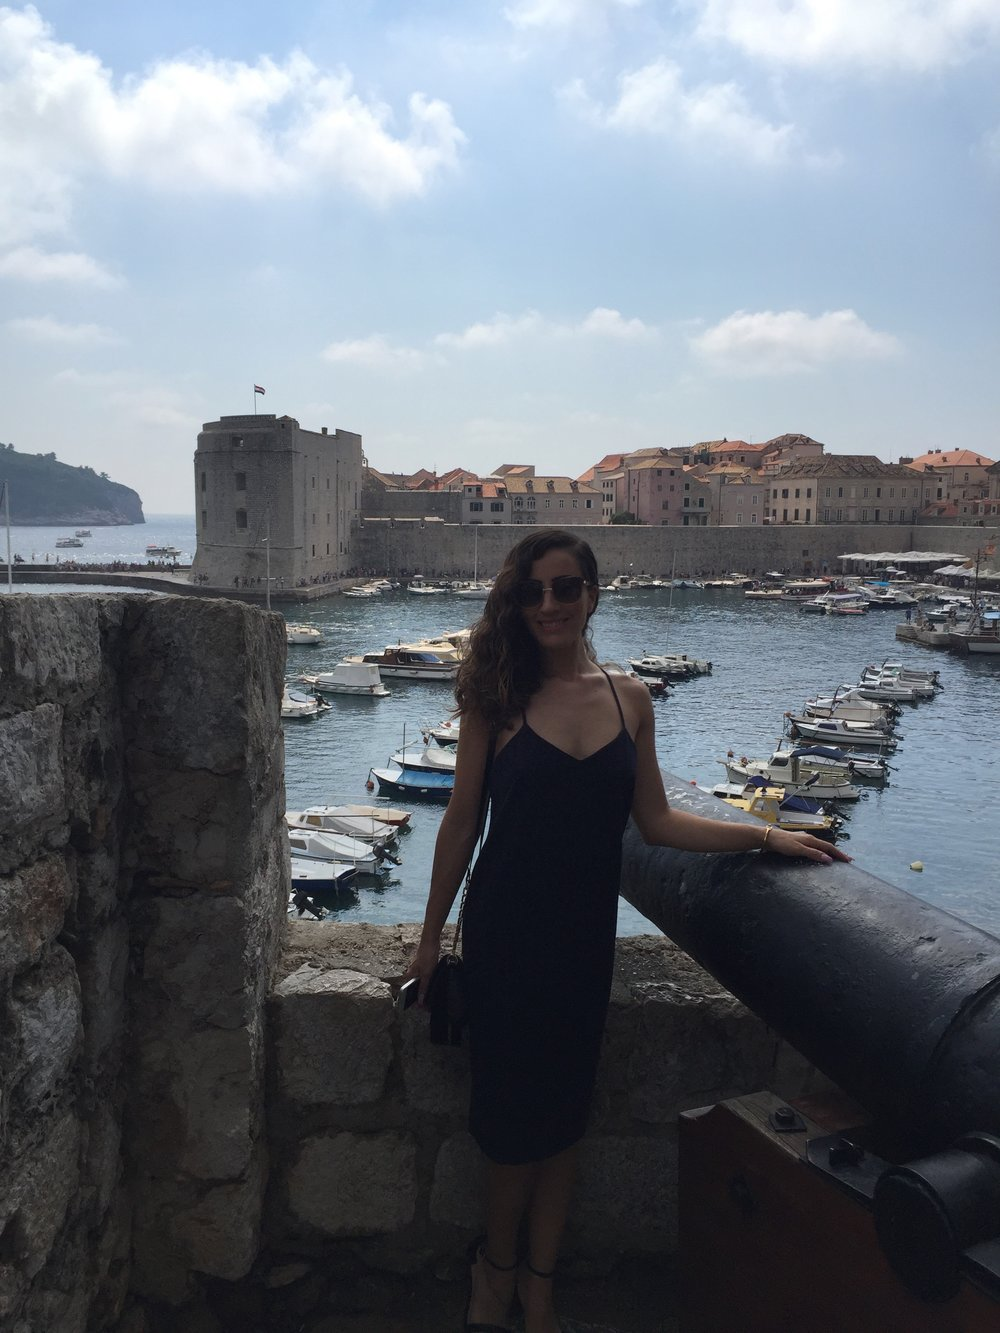 dubrovnik-fashion-blogger-travel-outfitoftheday